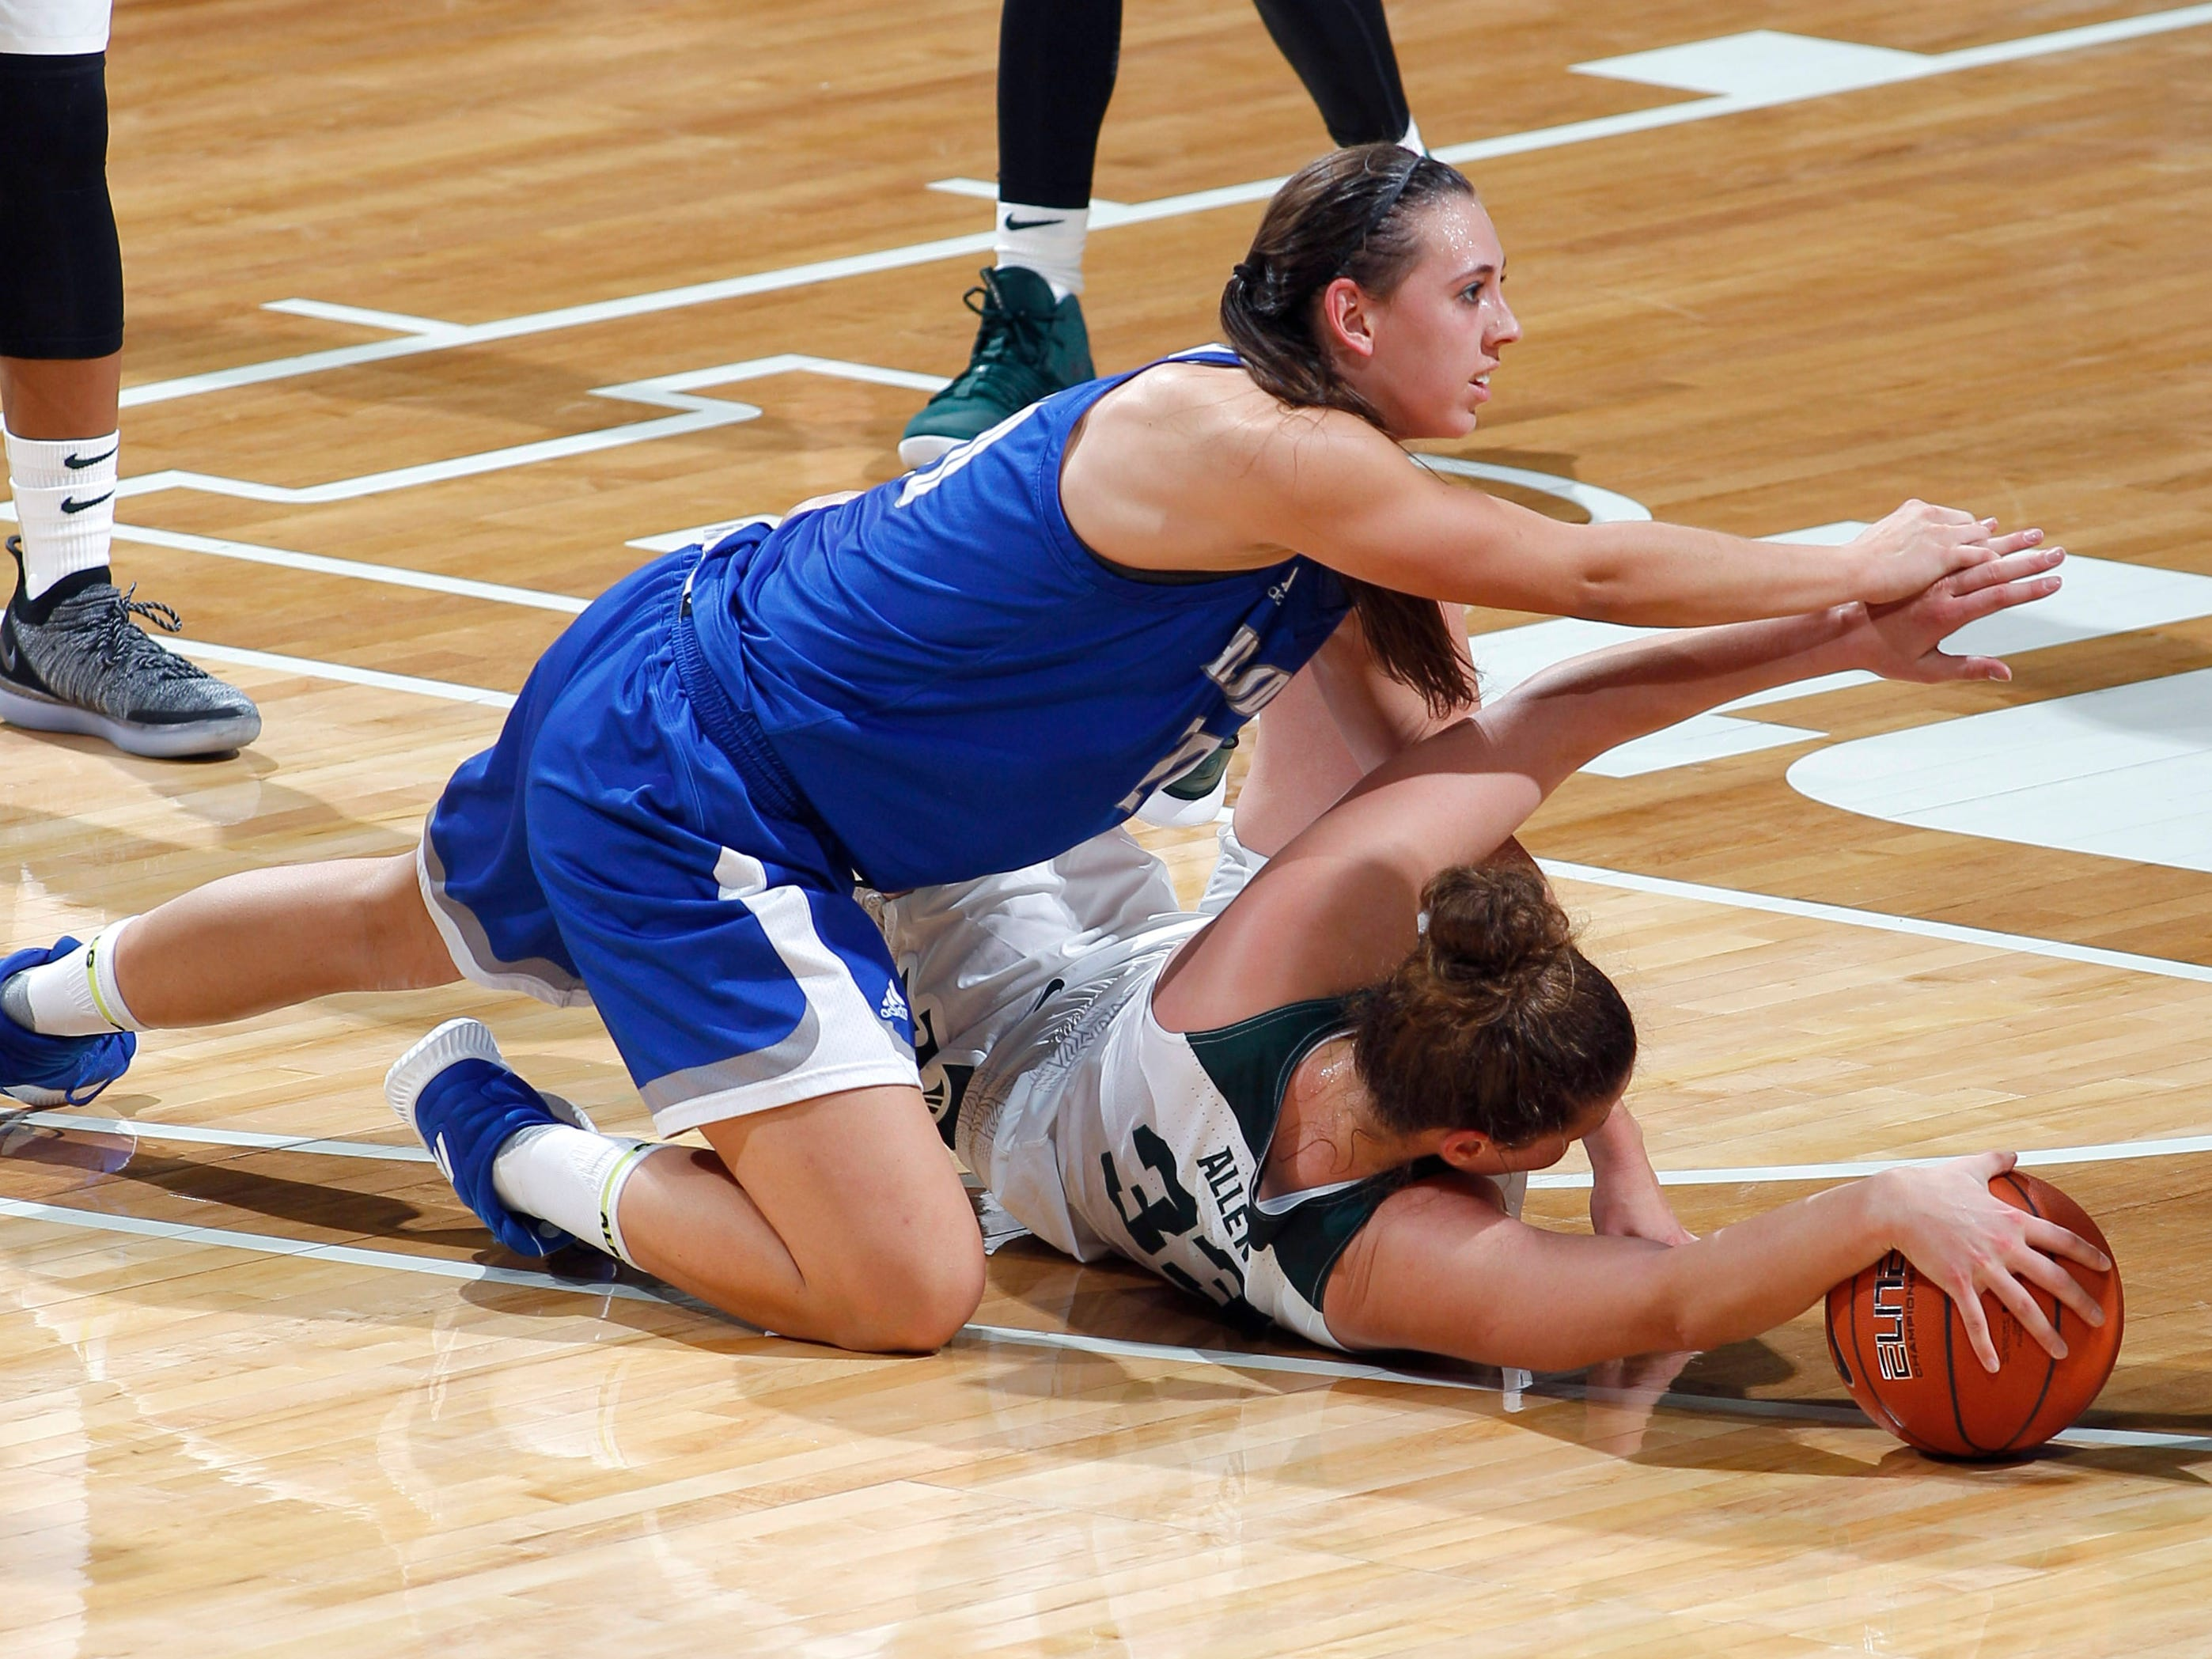 Hillsdale's Makenna Ott, top, and Michigan State's Jenna Allen wrestle for the ball, Thursday, Nov. 1, 2018, in East Lansing, Mich.